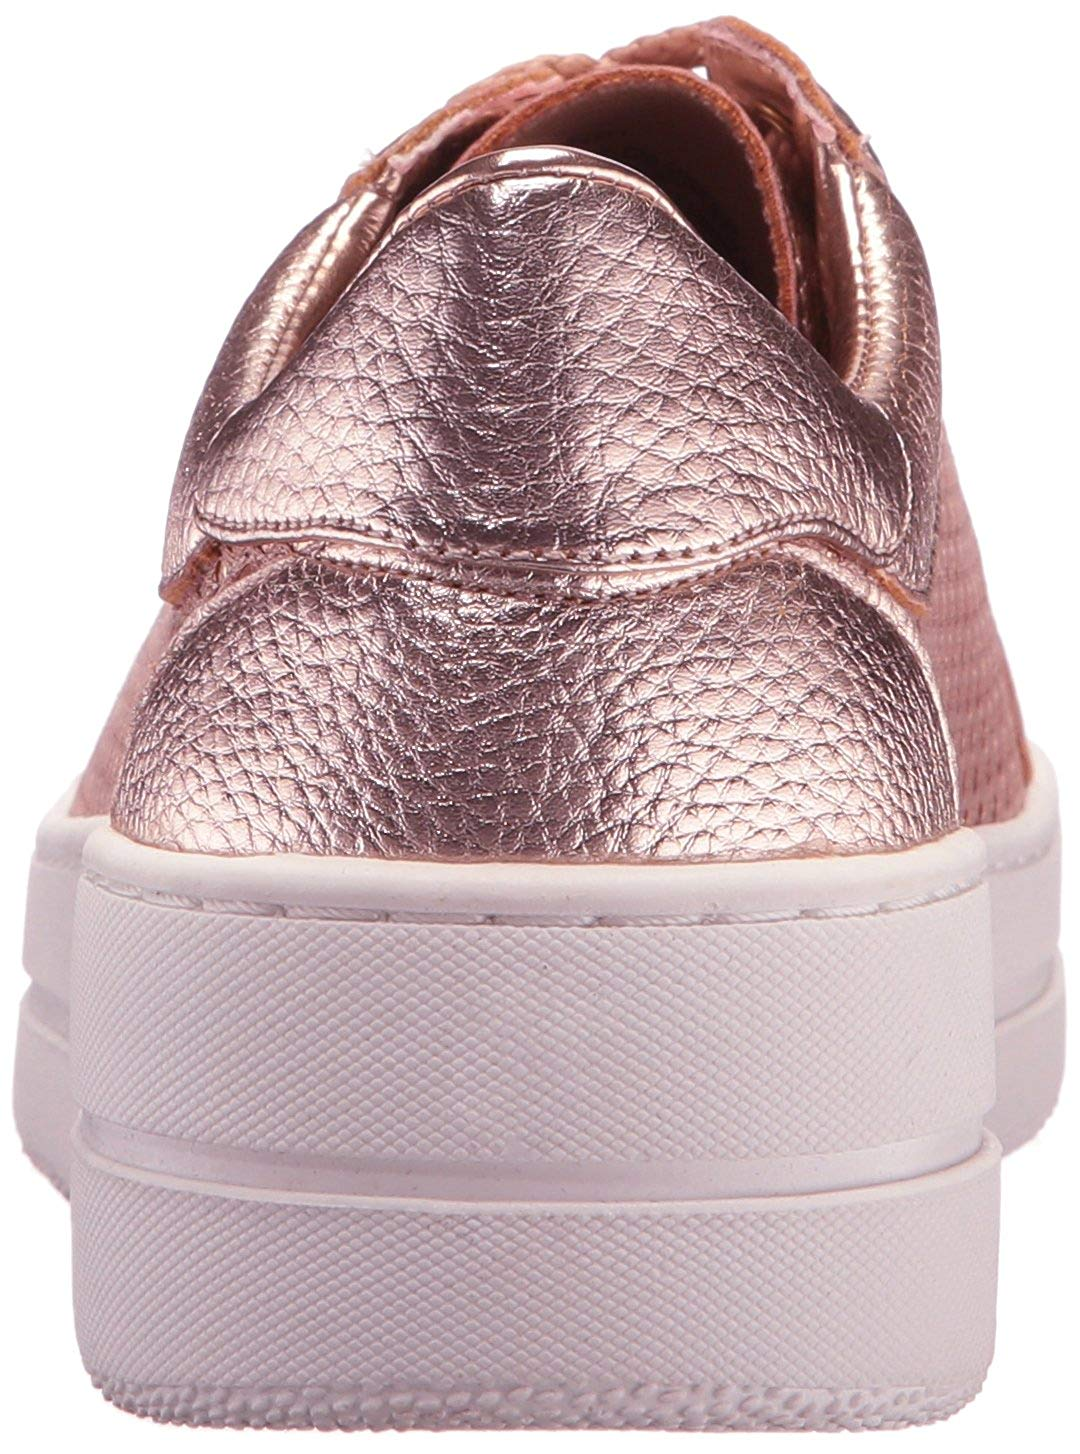 0d96bd63885 STEVEN by Steve Madden Womens nyssa Low Top Lace Up Walking Shoes